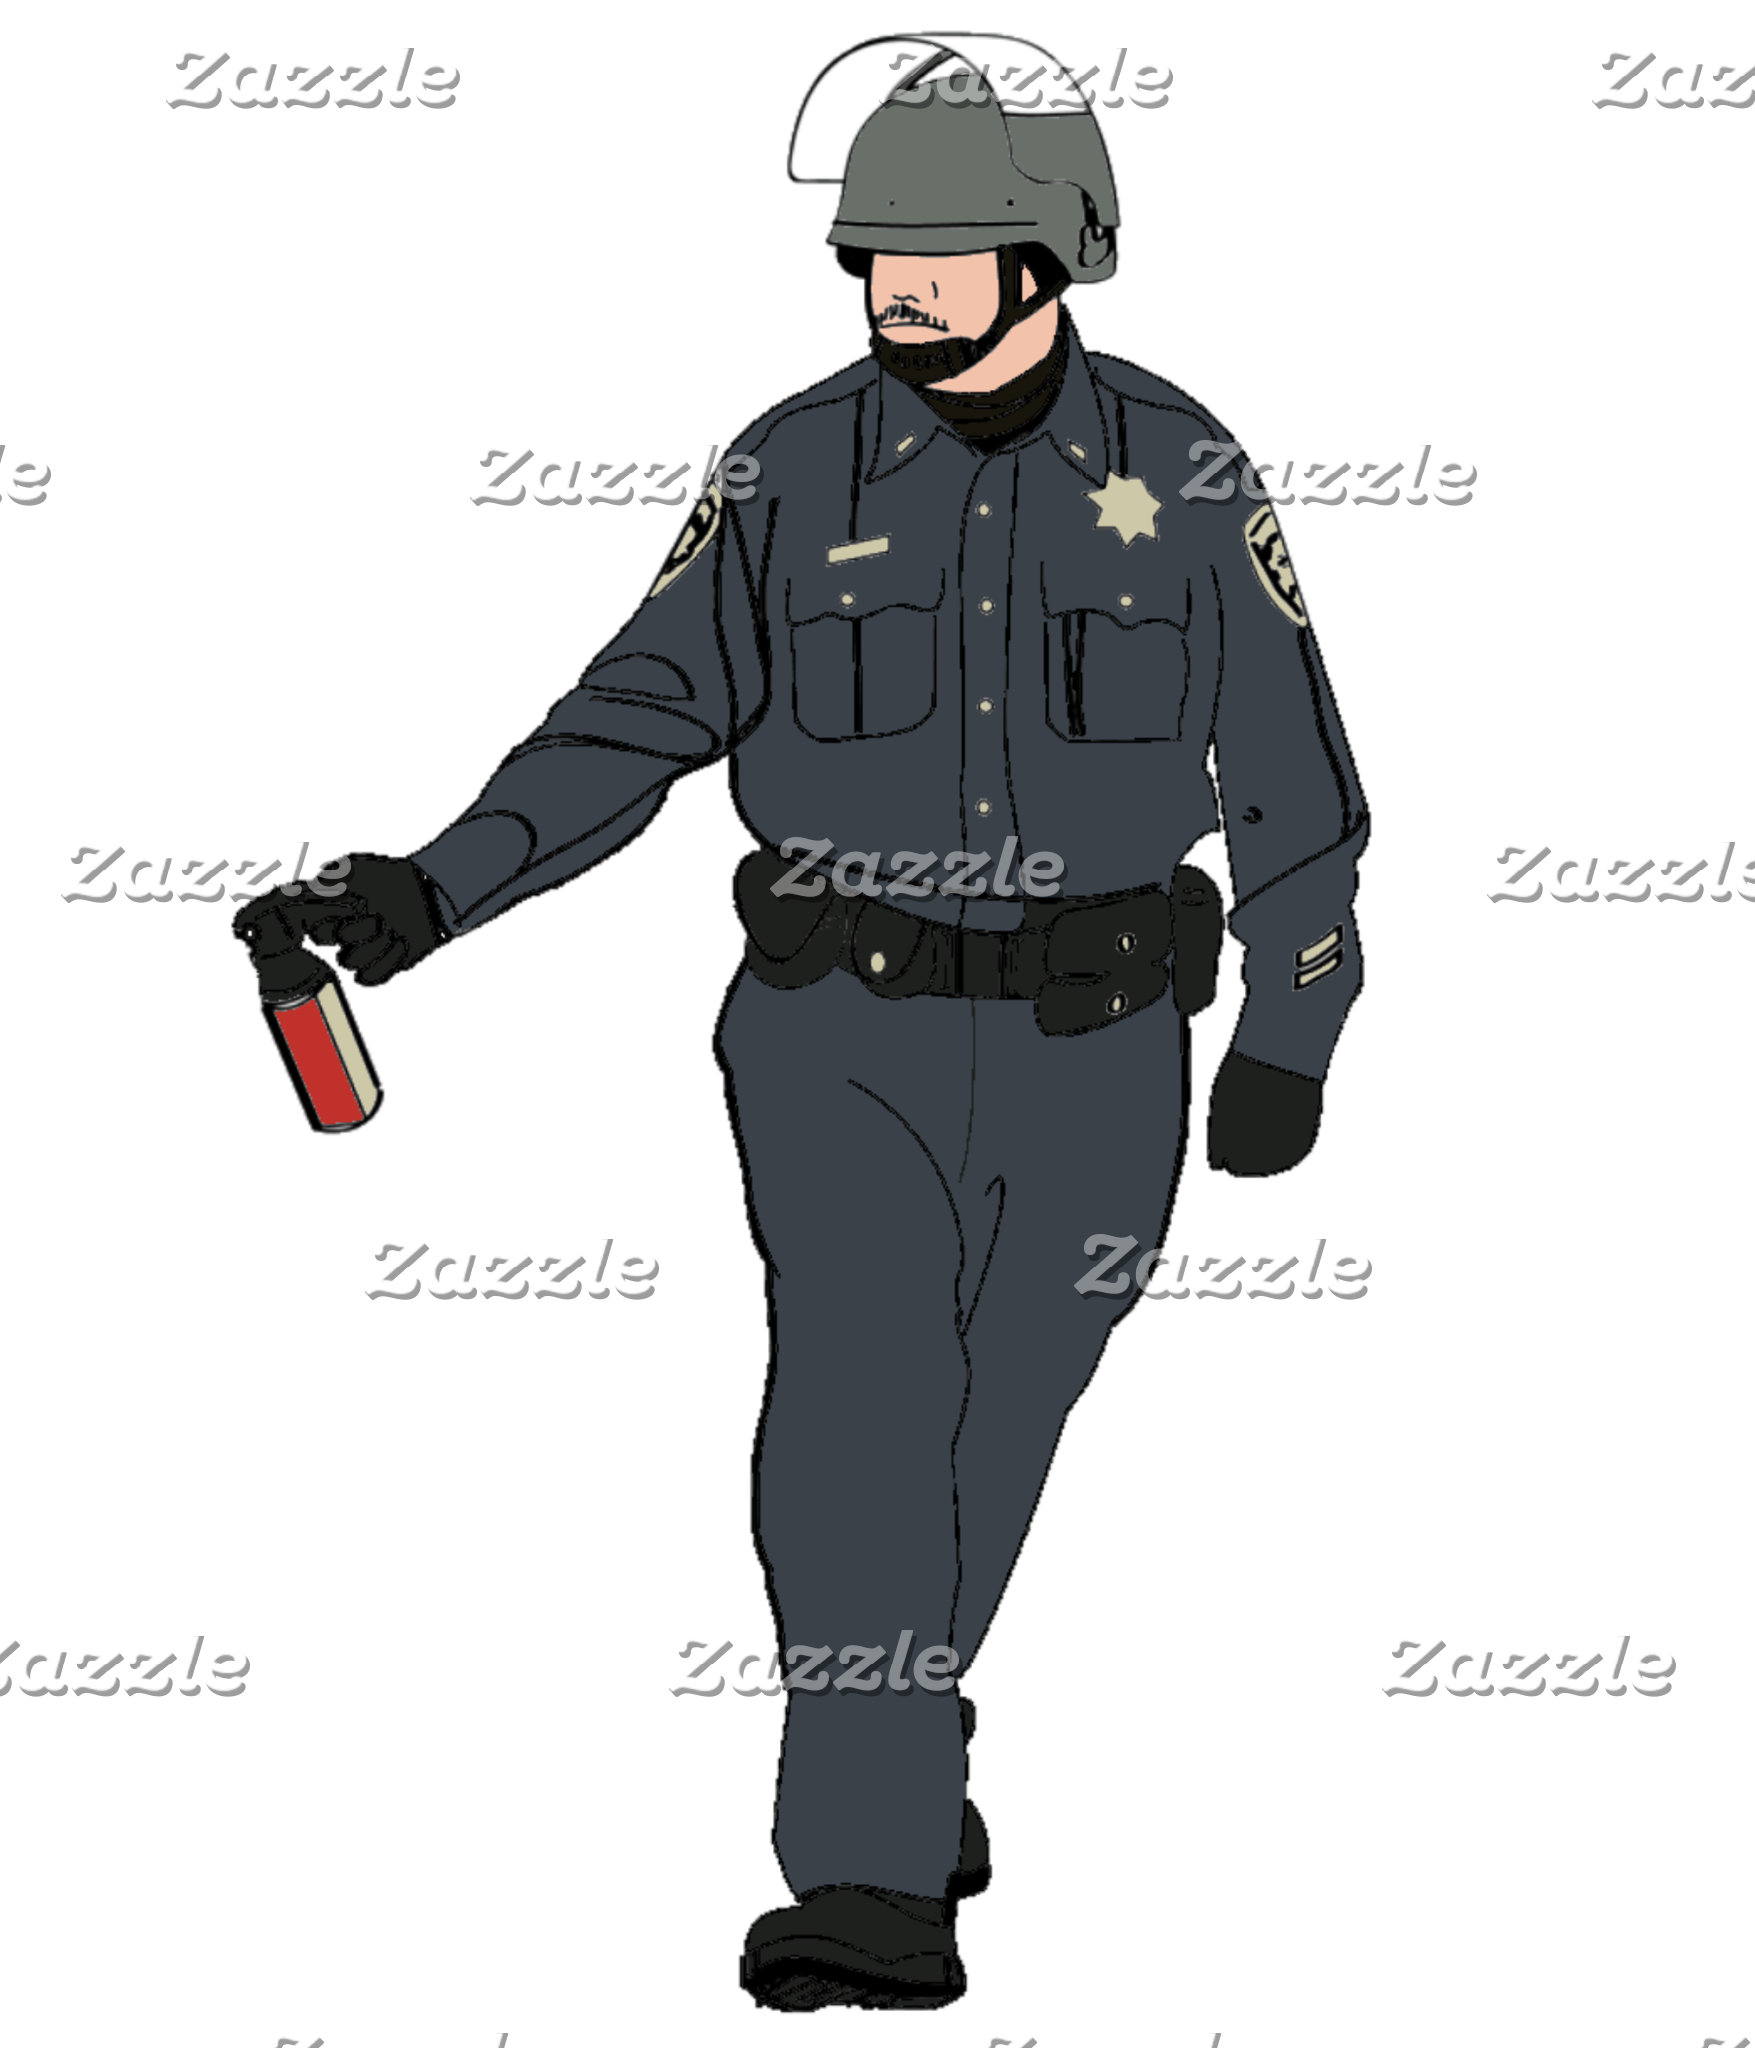 Casual Pepper Spray Cop